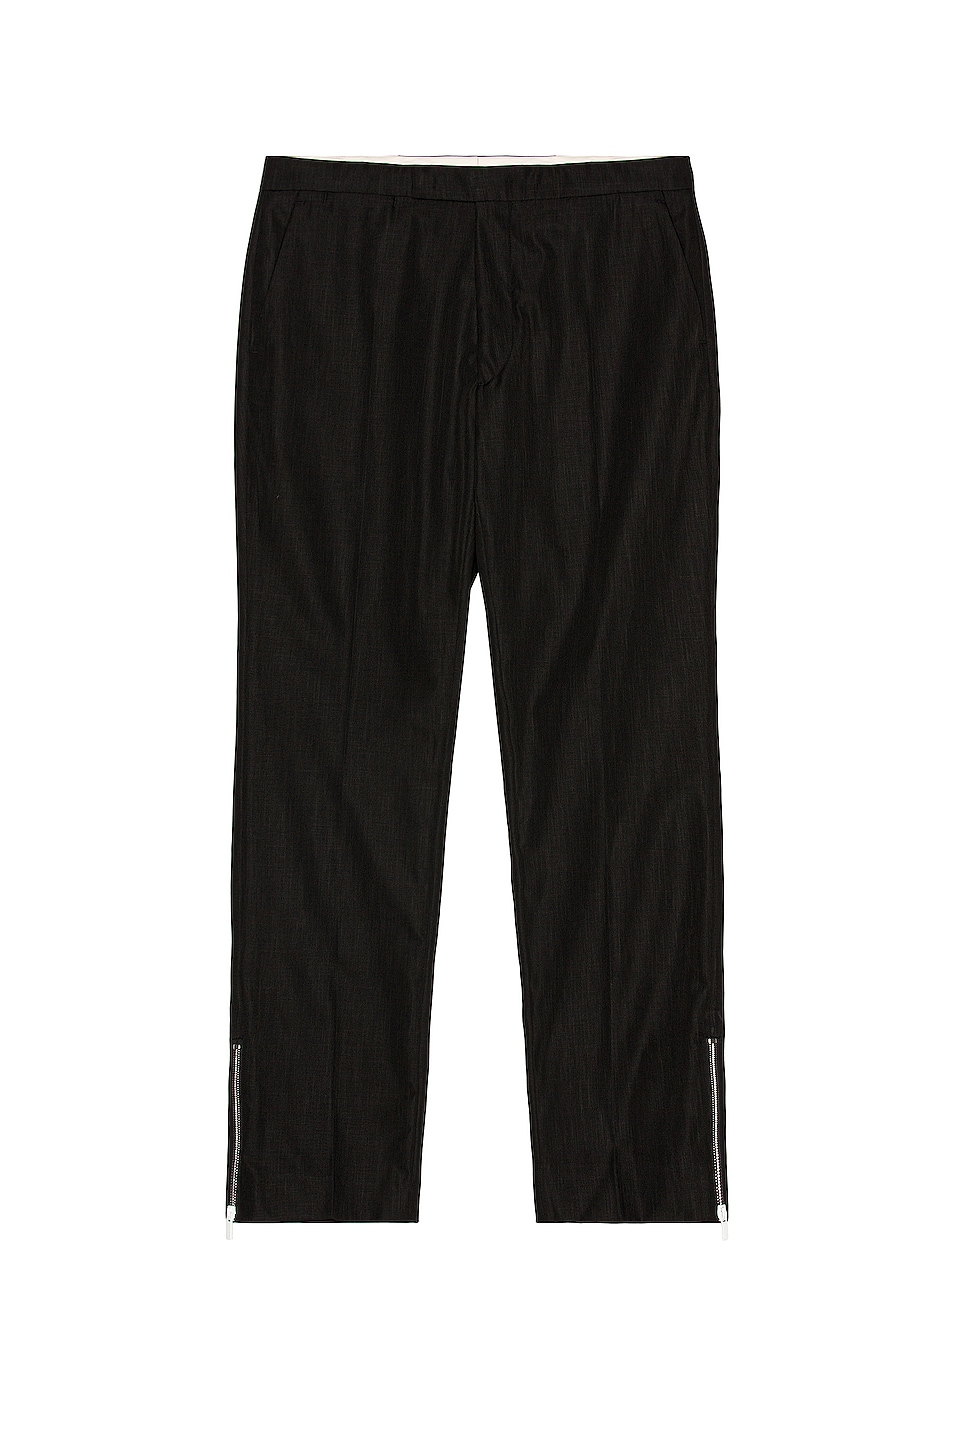 Image 1 of Raf Simons Slim Fit Pants With Ankle Zips in Black